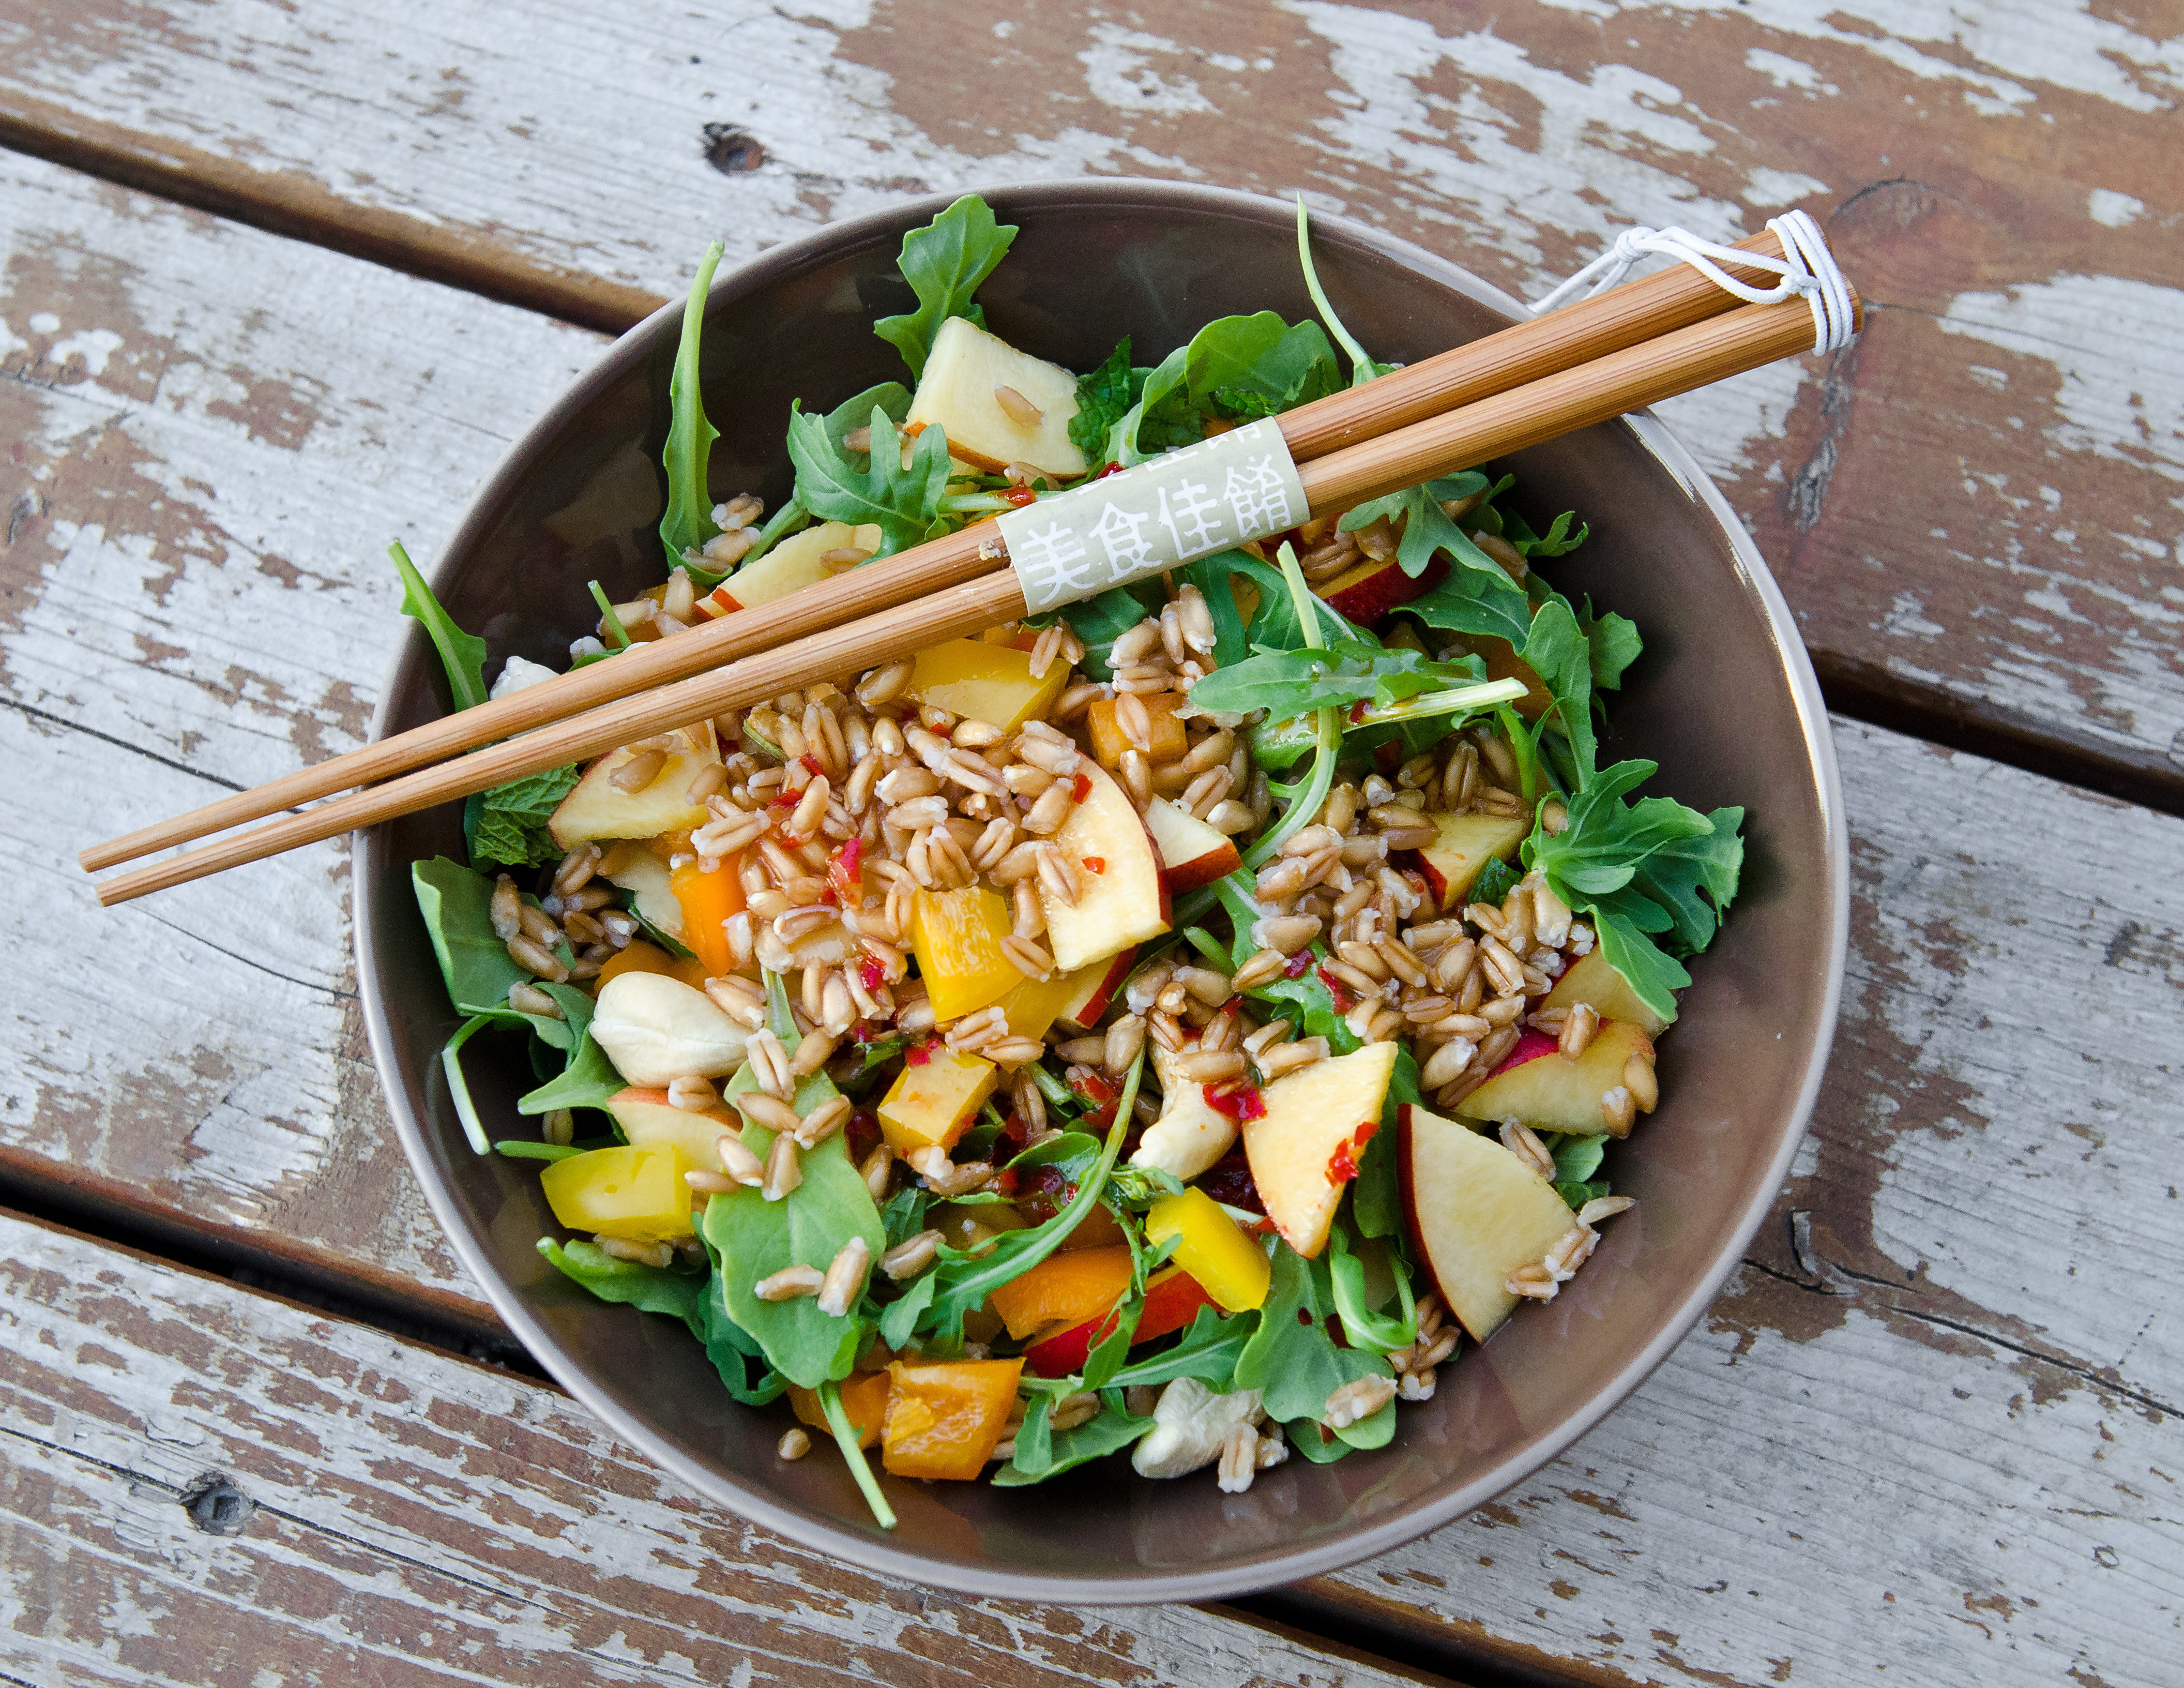 Healthy Vegan Lunches  30 Healthy Ve arian Lunch Ideas The Fig Tree